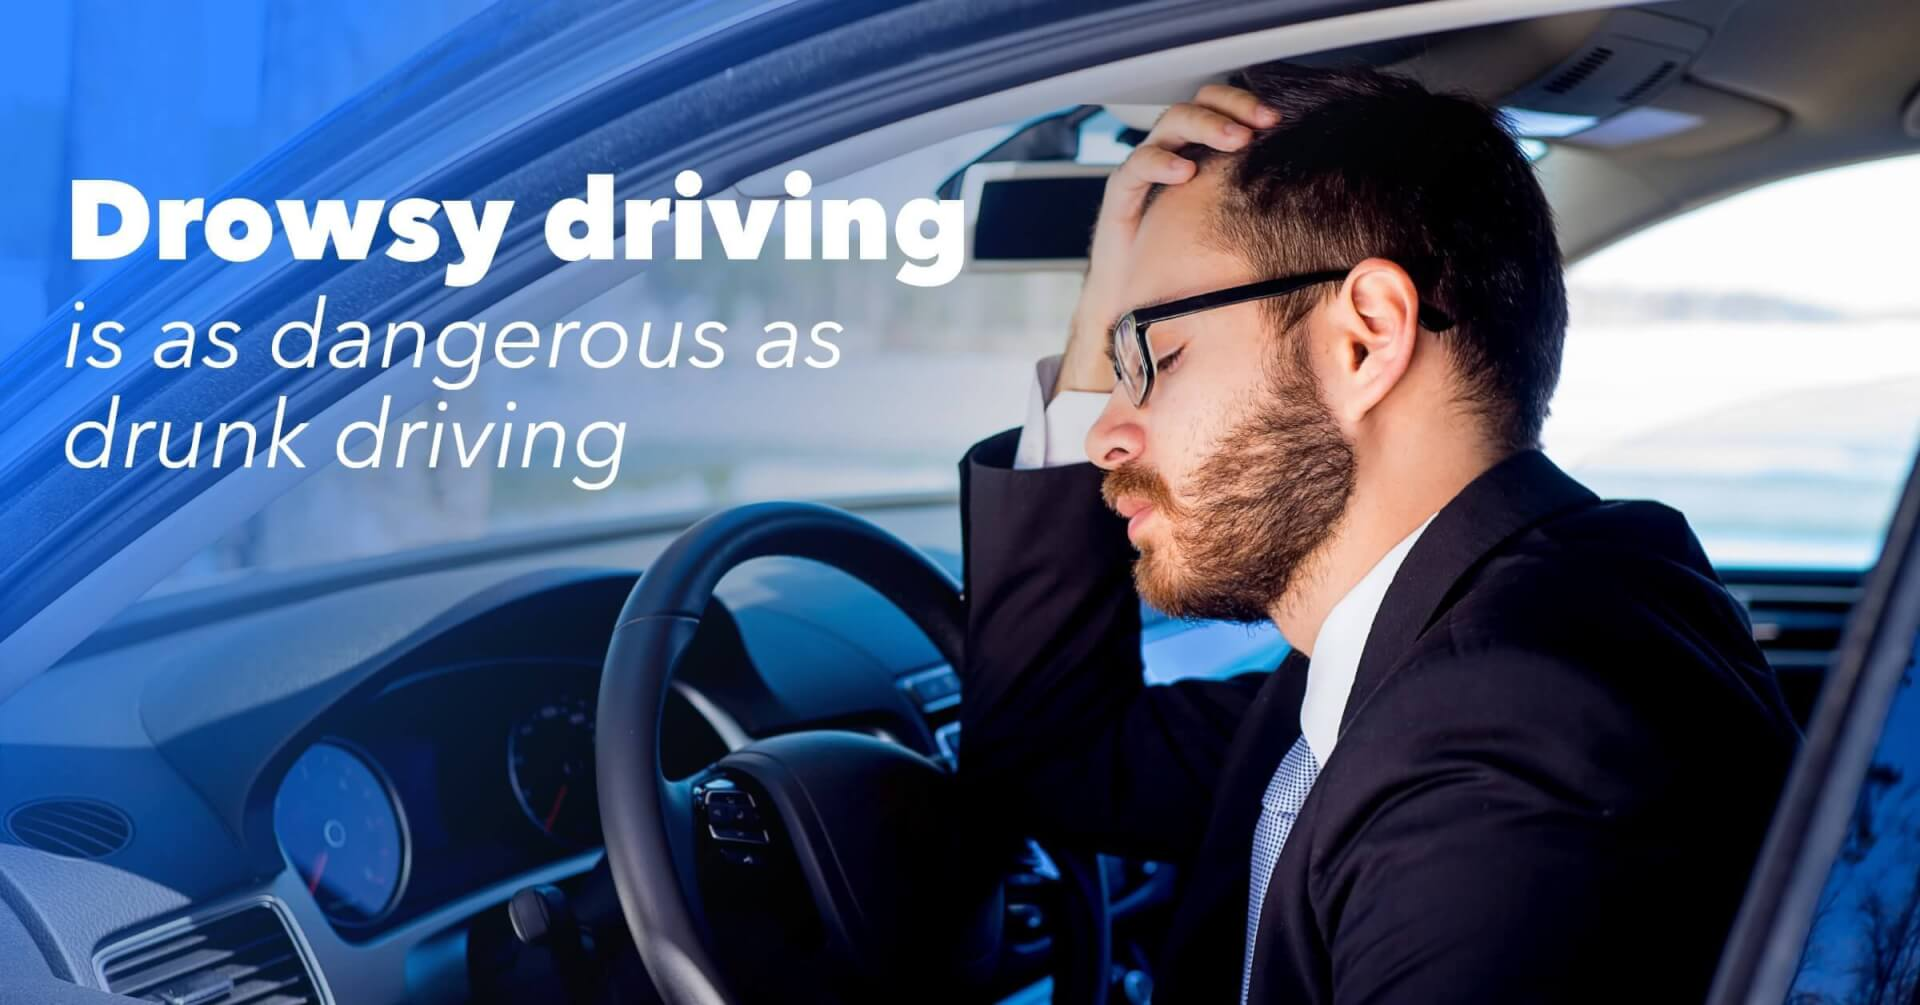 Personal Social - Drowsy Driving Is a Dangerous as Drunk Driving